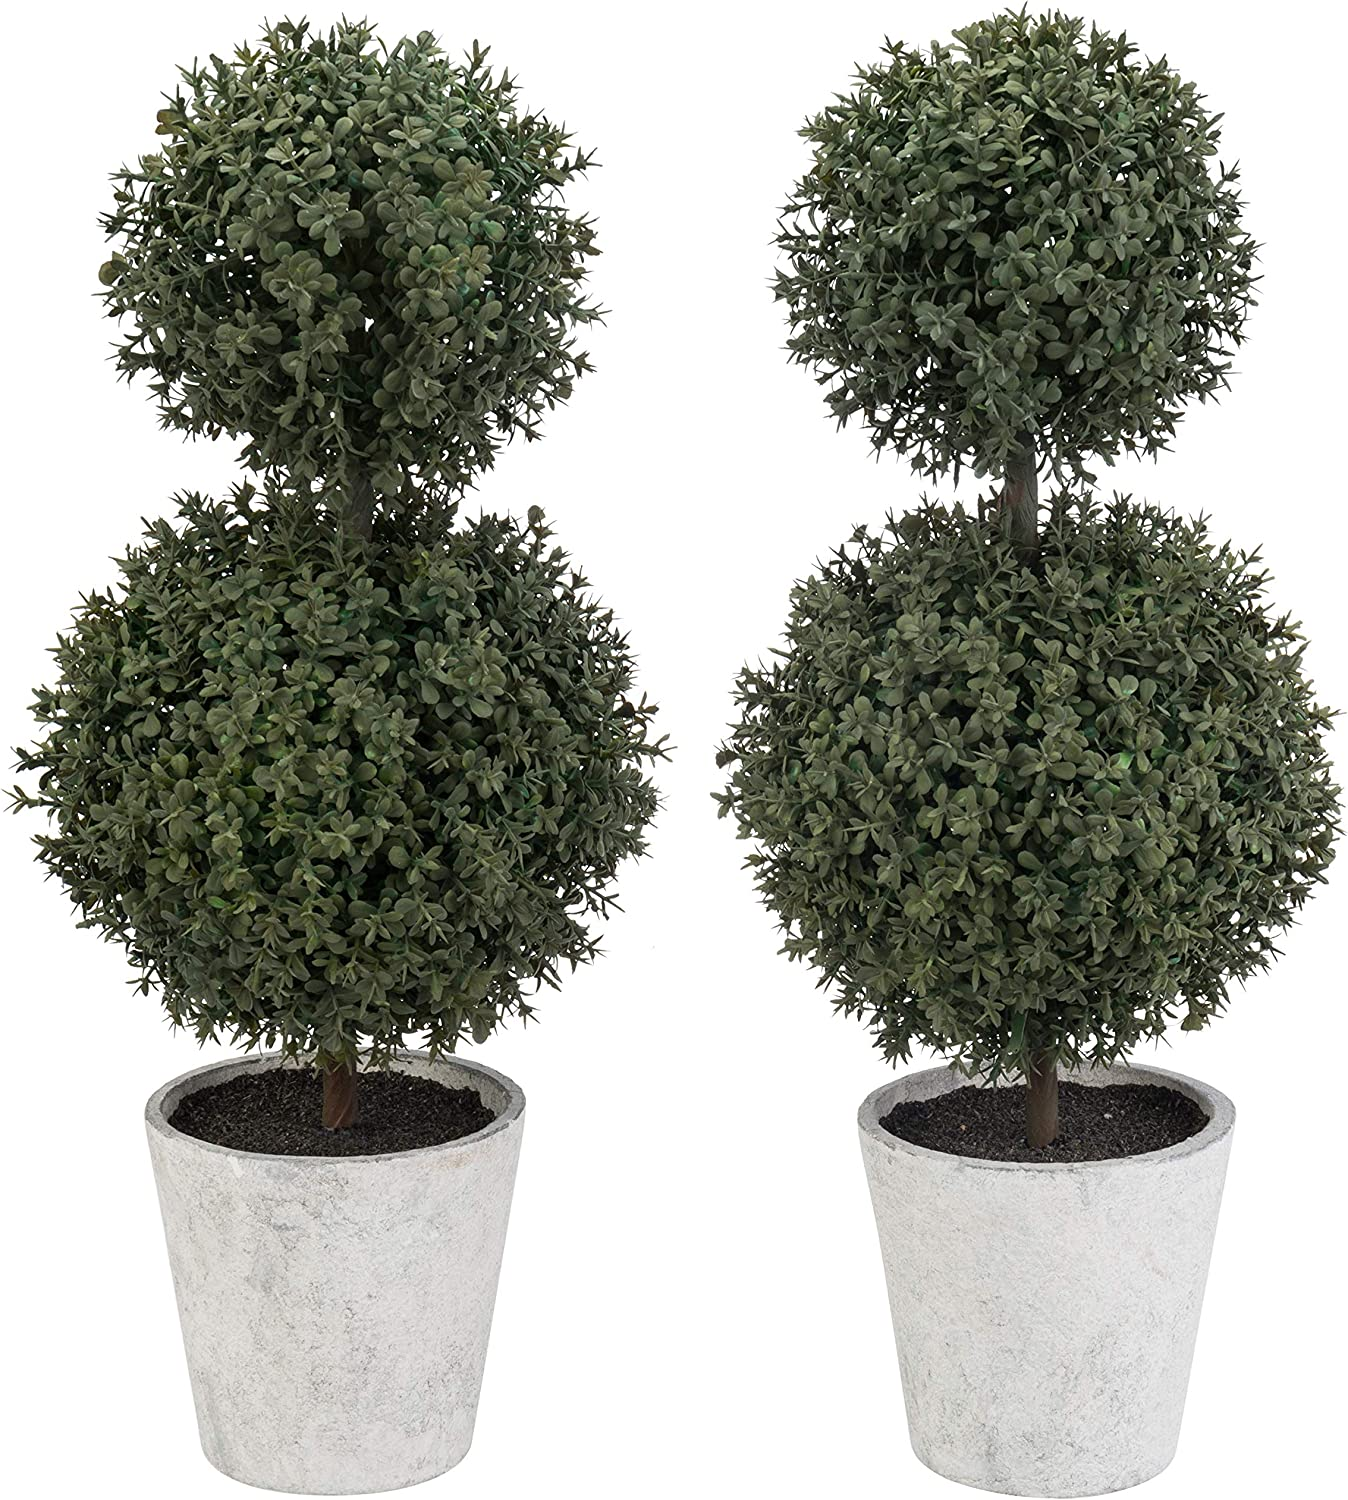 MyGift Artificial Boxwood Topiary Max 54% OFF Trees Pots Gray Pulp Paper Cheap in